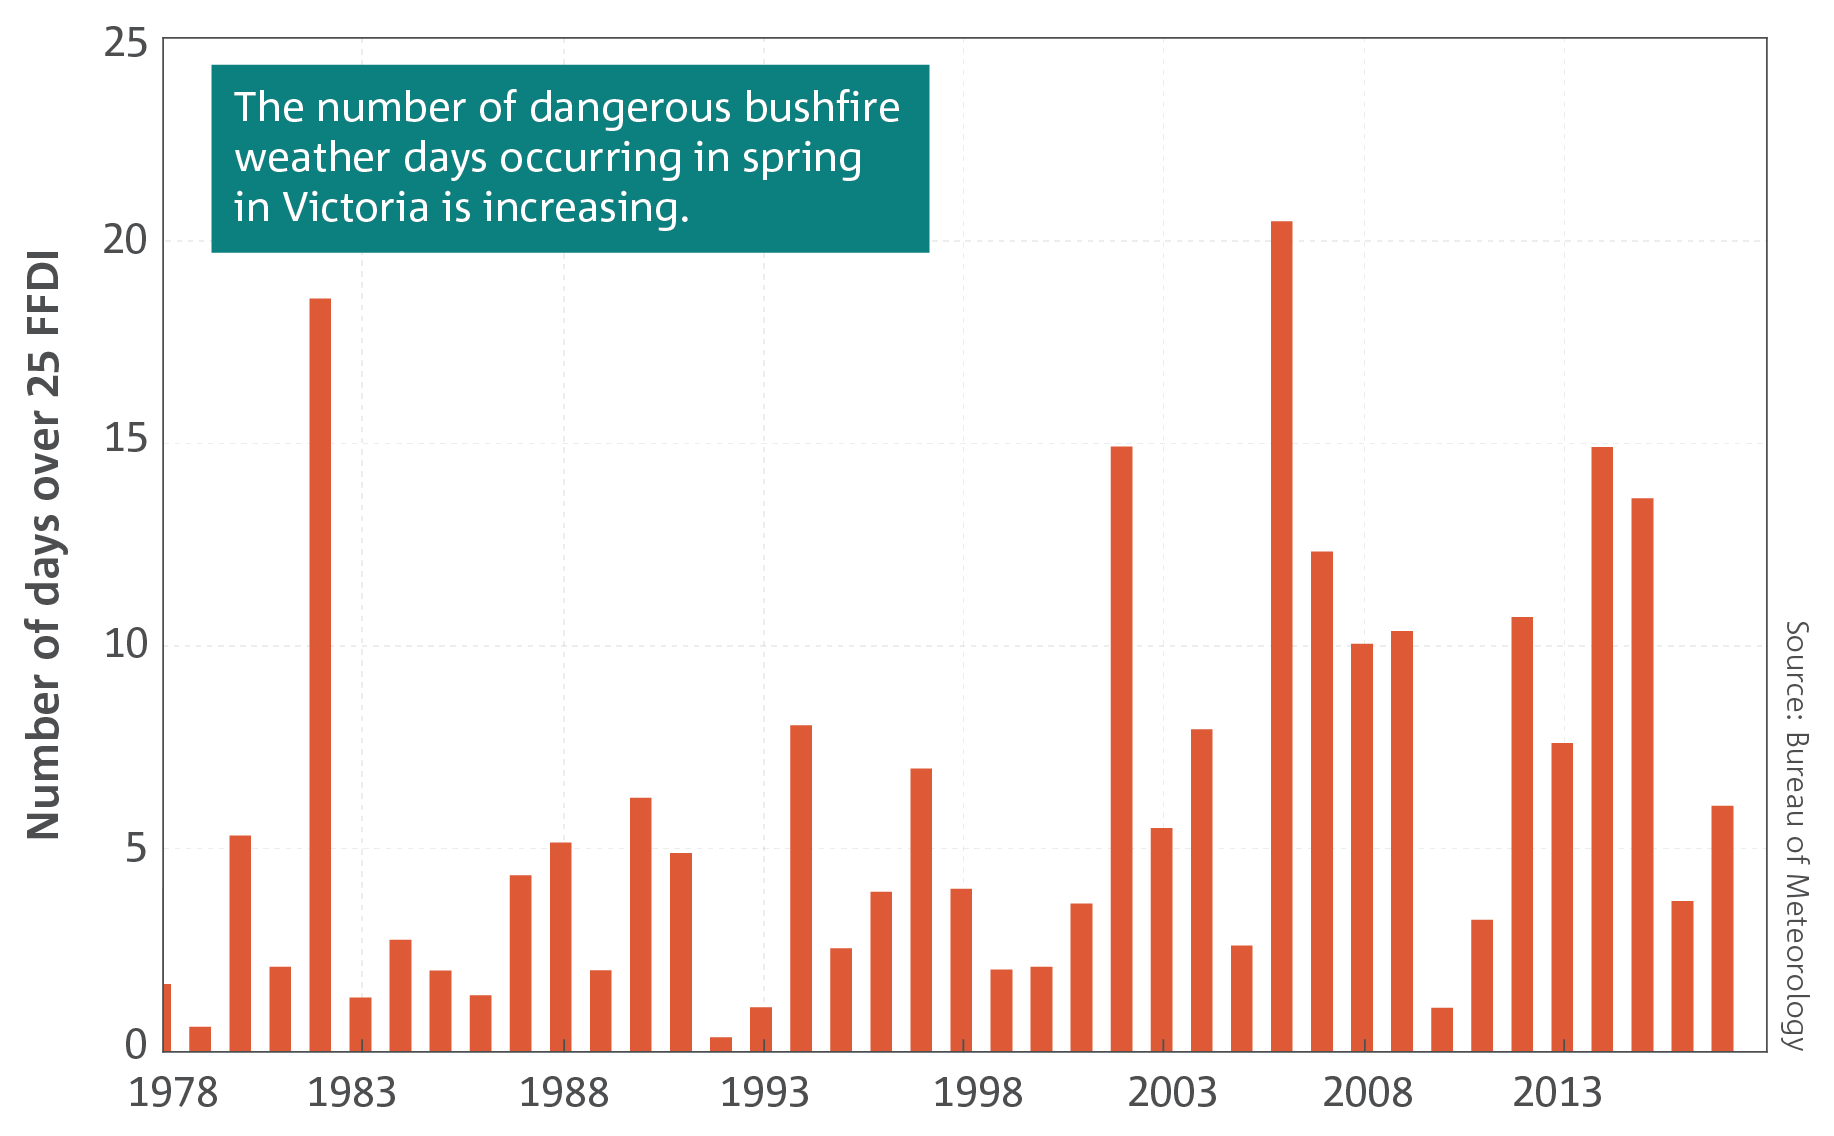 A bar graph showing the number of dangerous bushfire weather days occurring in spring in Victoria .